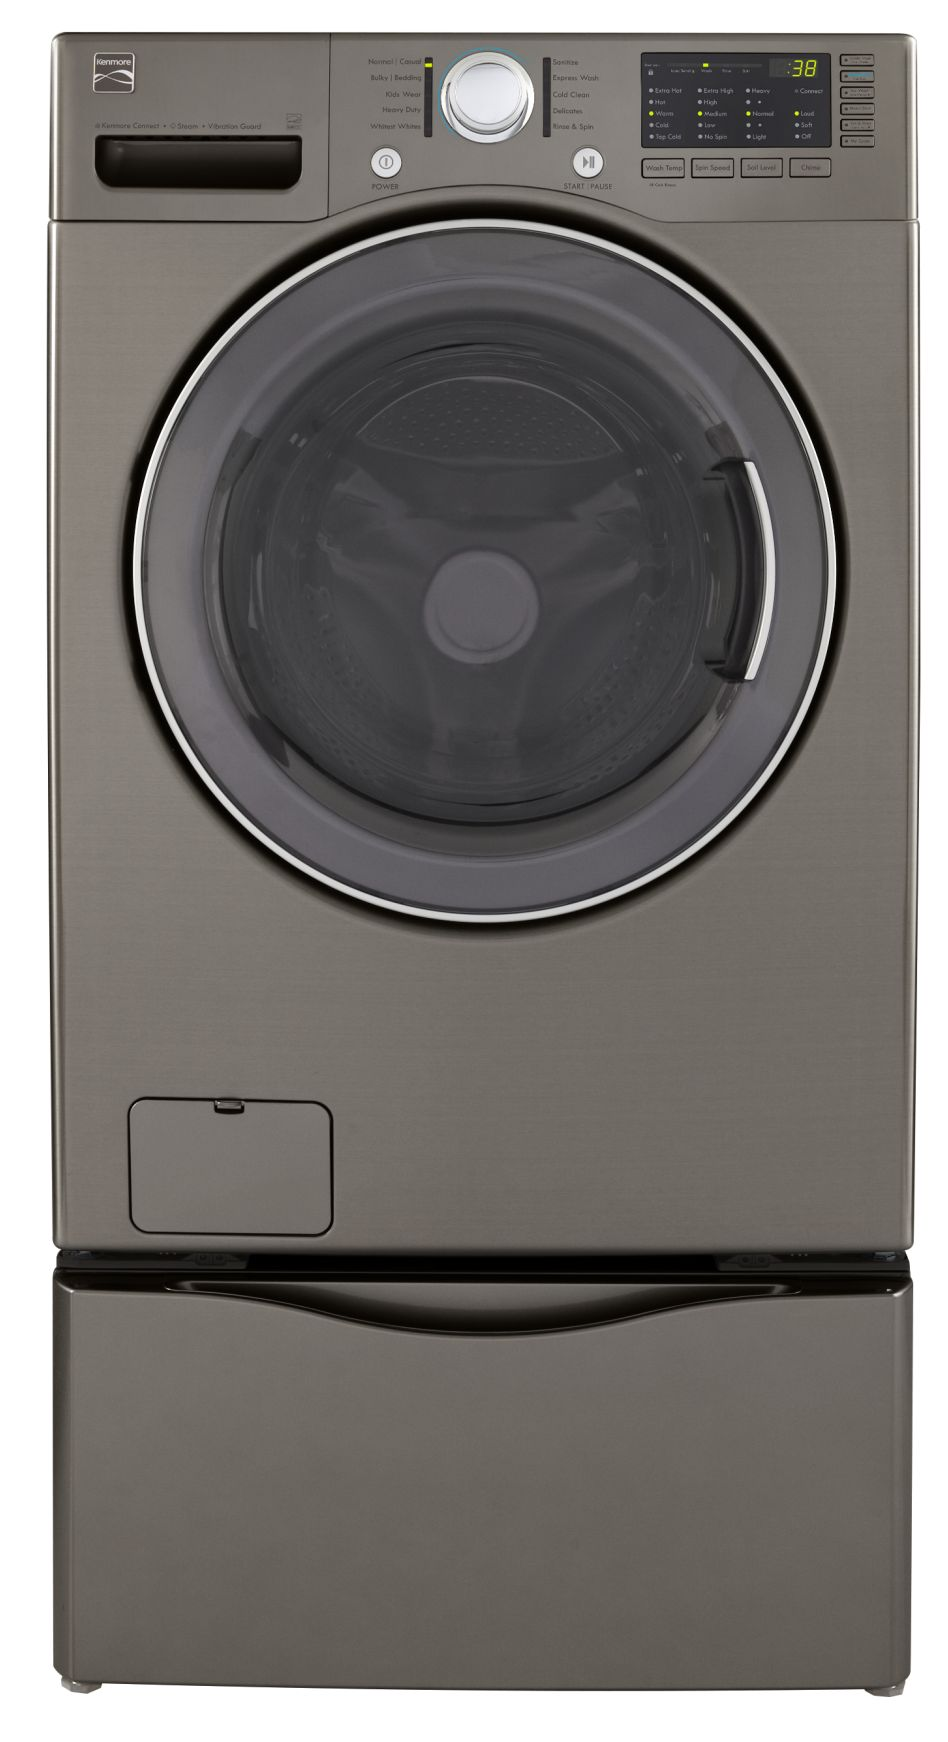 Kenmore 3.7 cu. ft. Steam Front-Load Washer - Metallic Silver